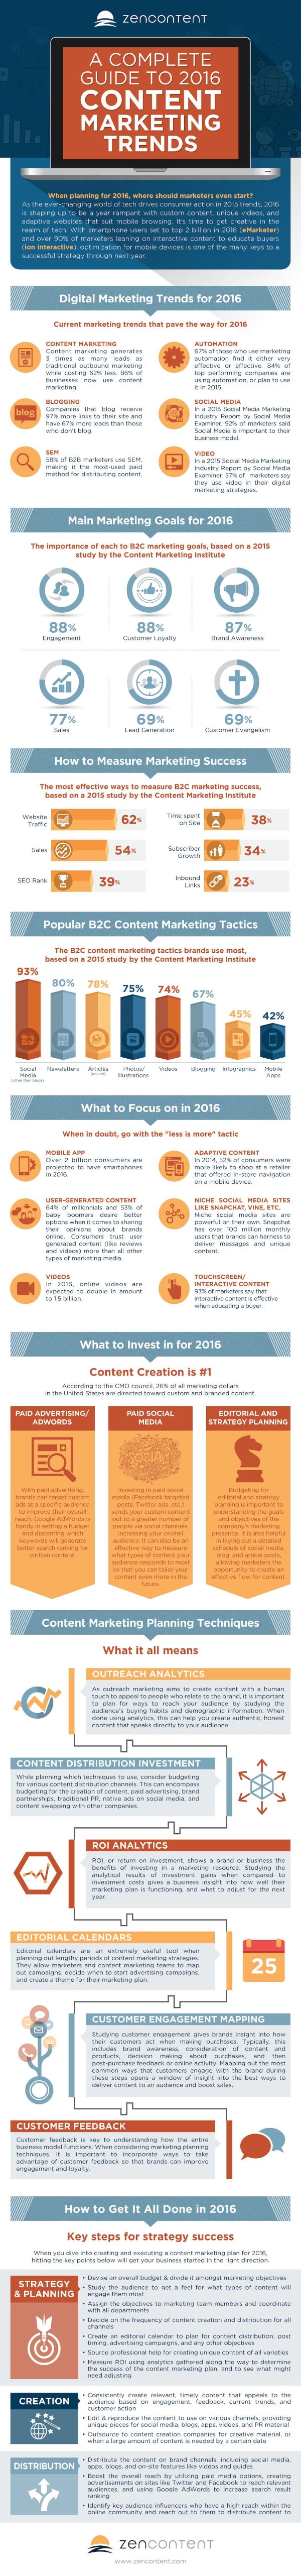 infografica-content-marketing